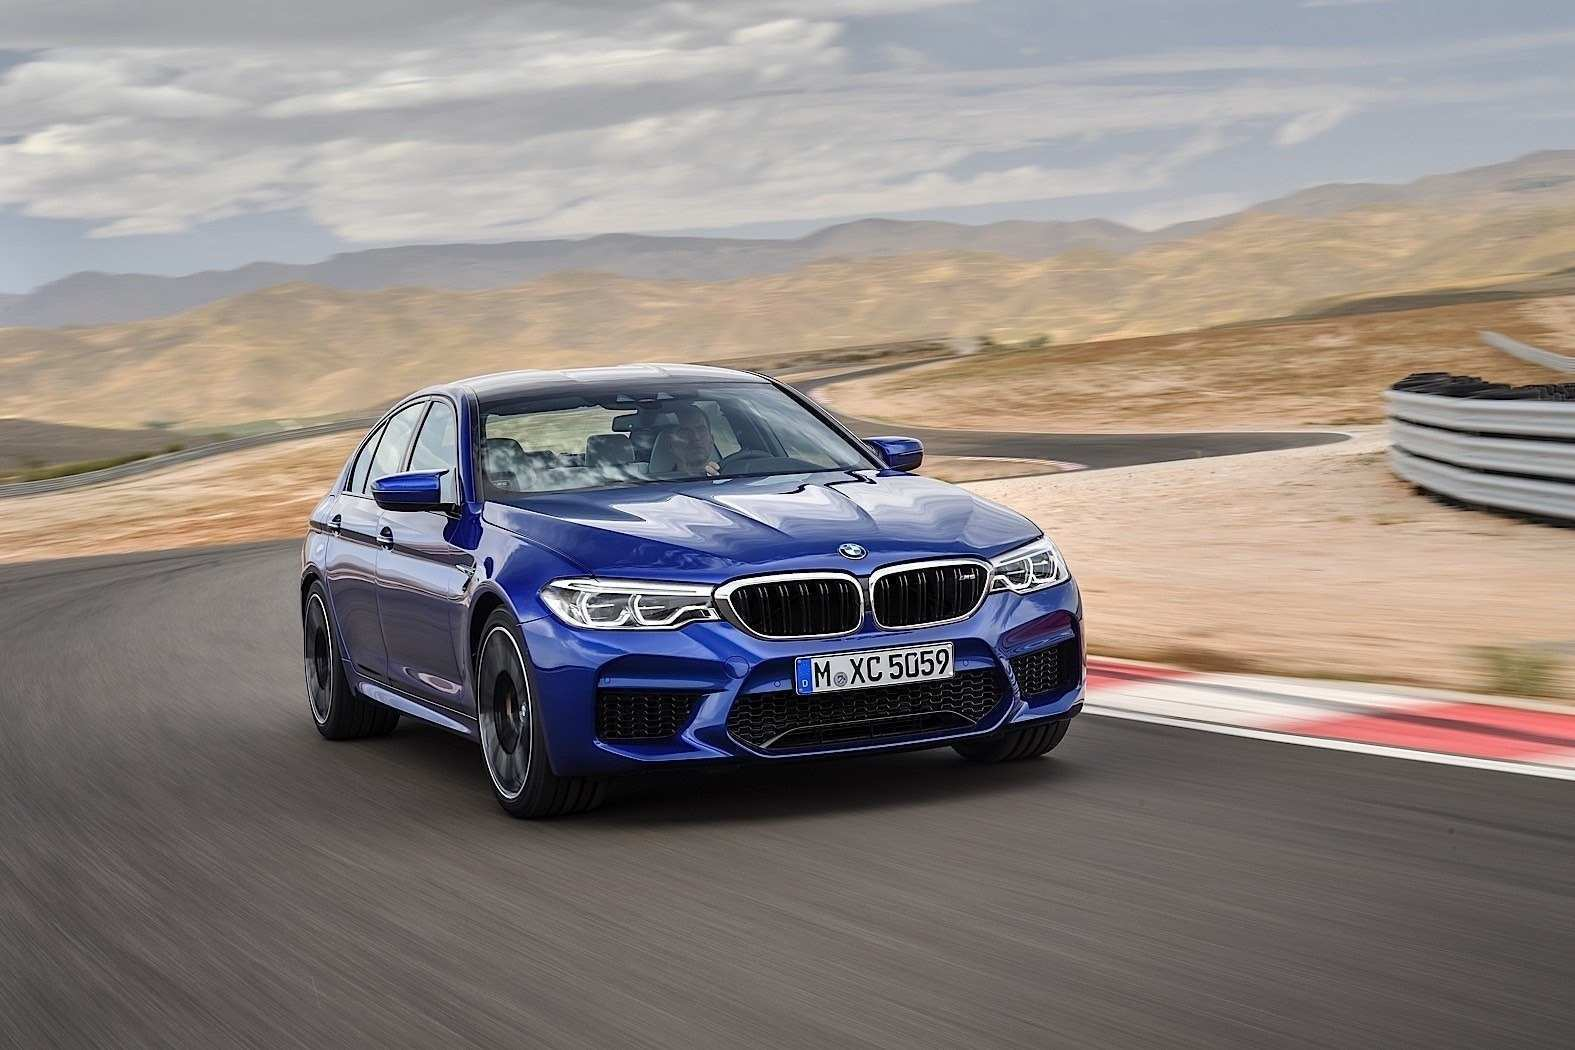 83 The Best 2020 BMW M5 Xdrive Awd Review